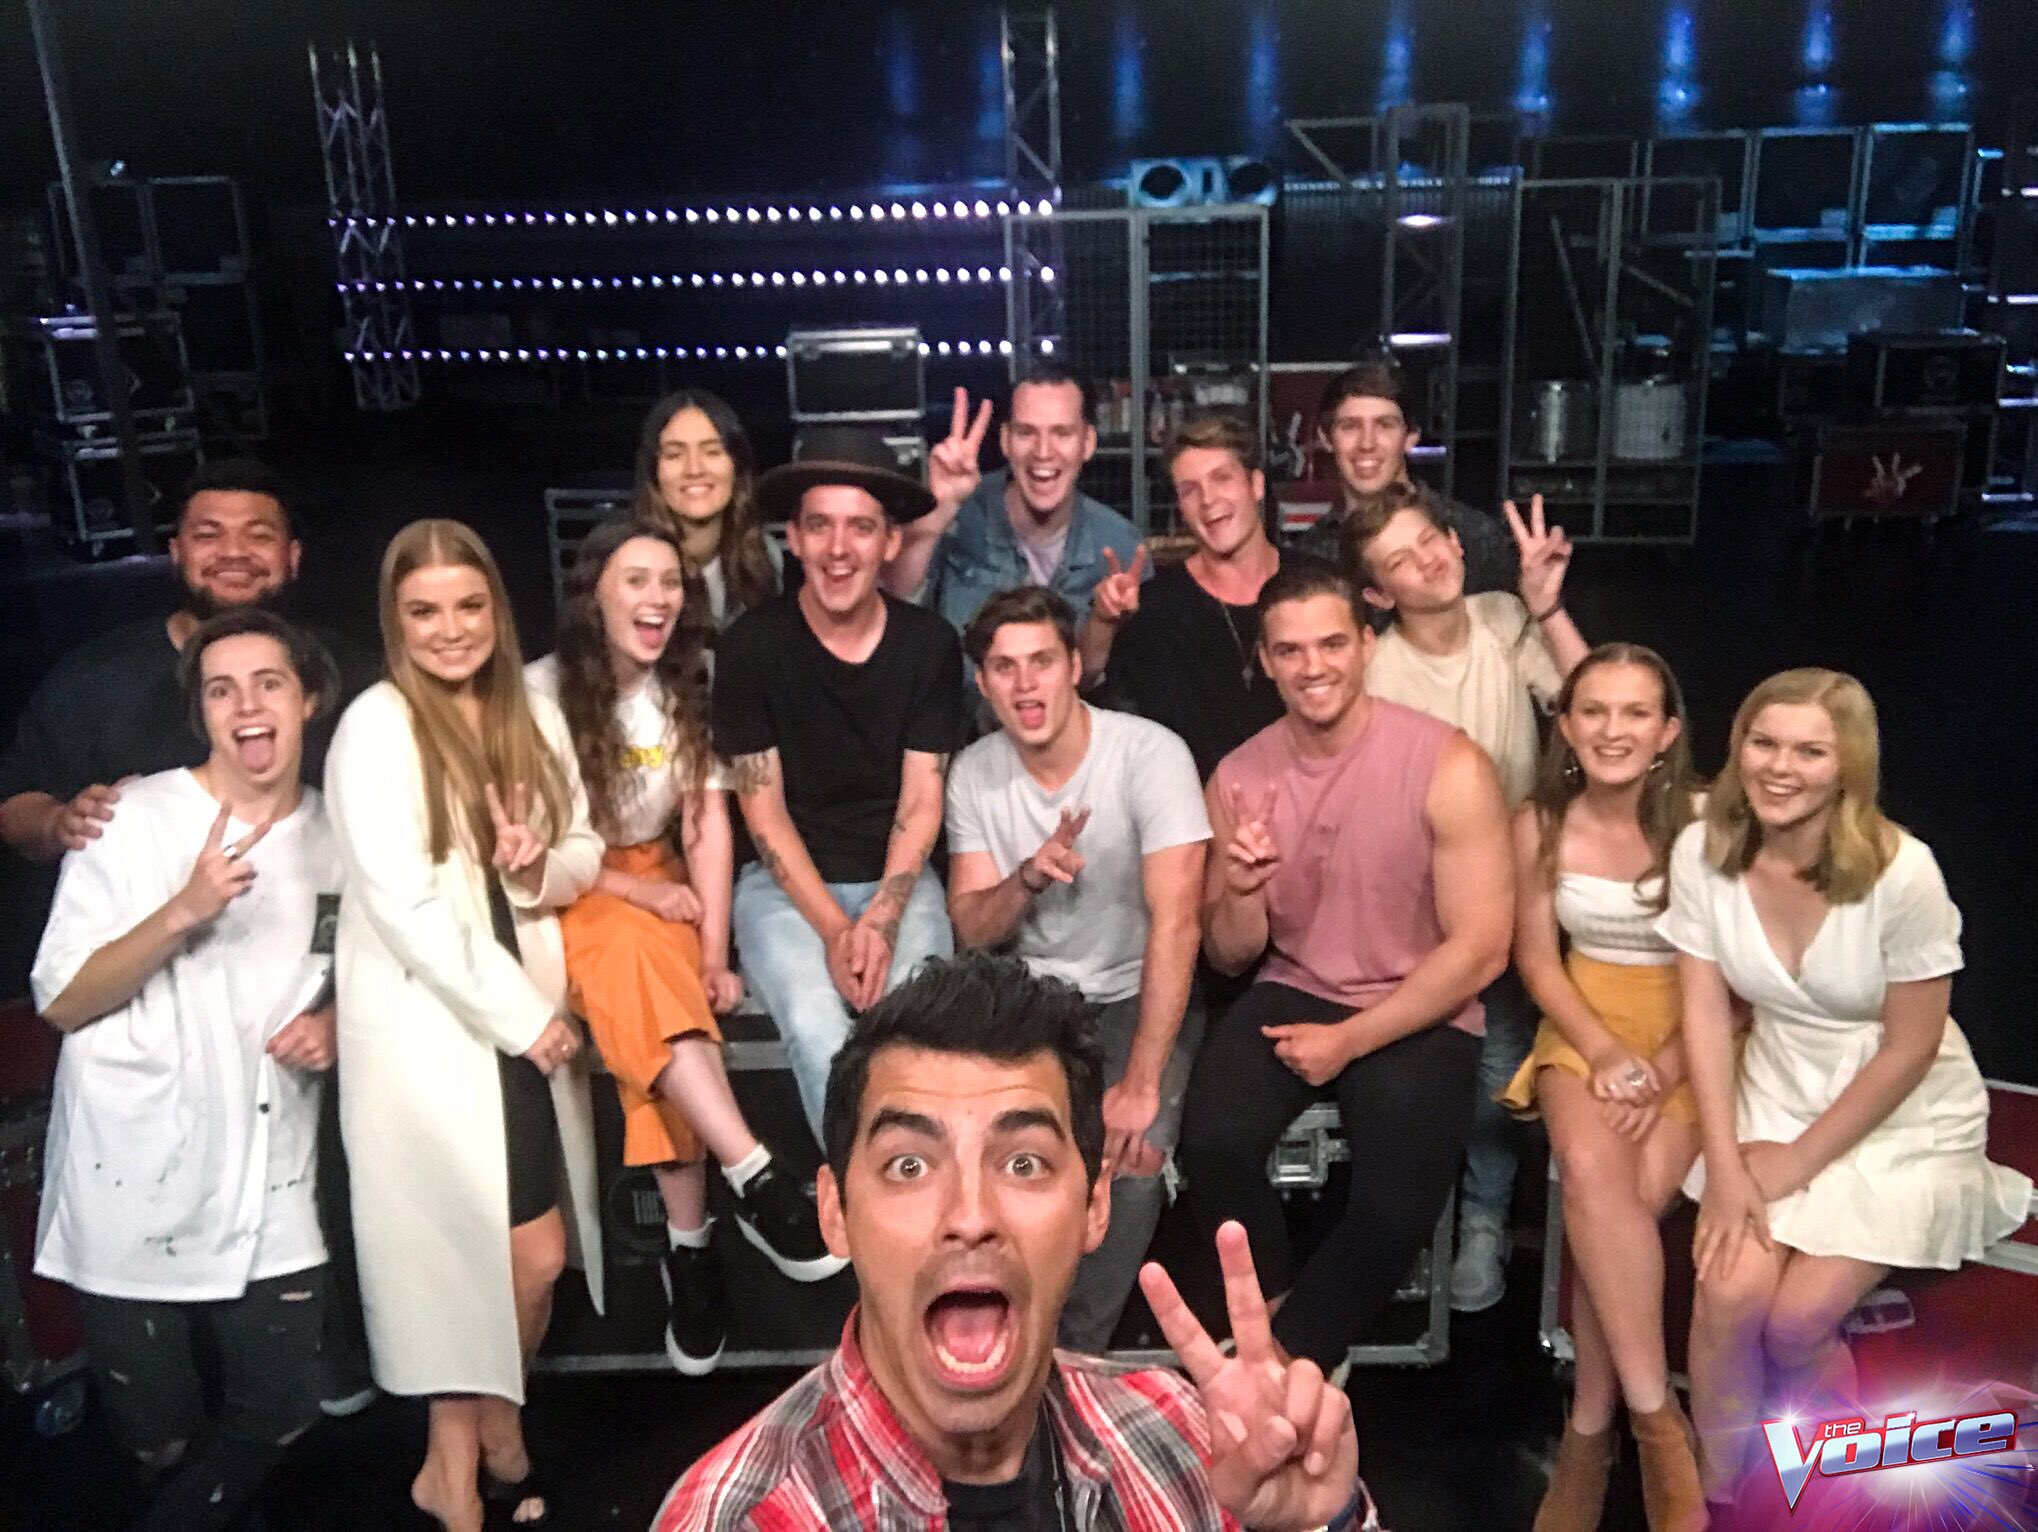 Knockouts start tonight and we've got three intense rounds coming up... #TeamJoe @thevoiceau �� https://t.co/Iati2j8XCx